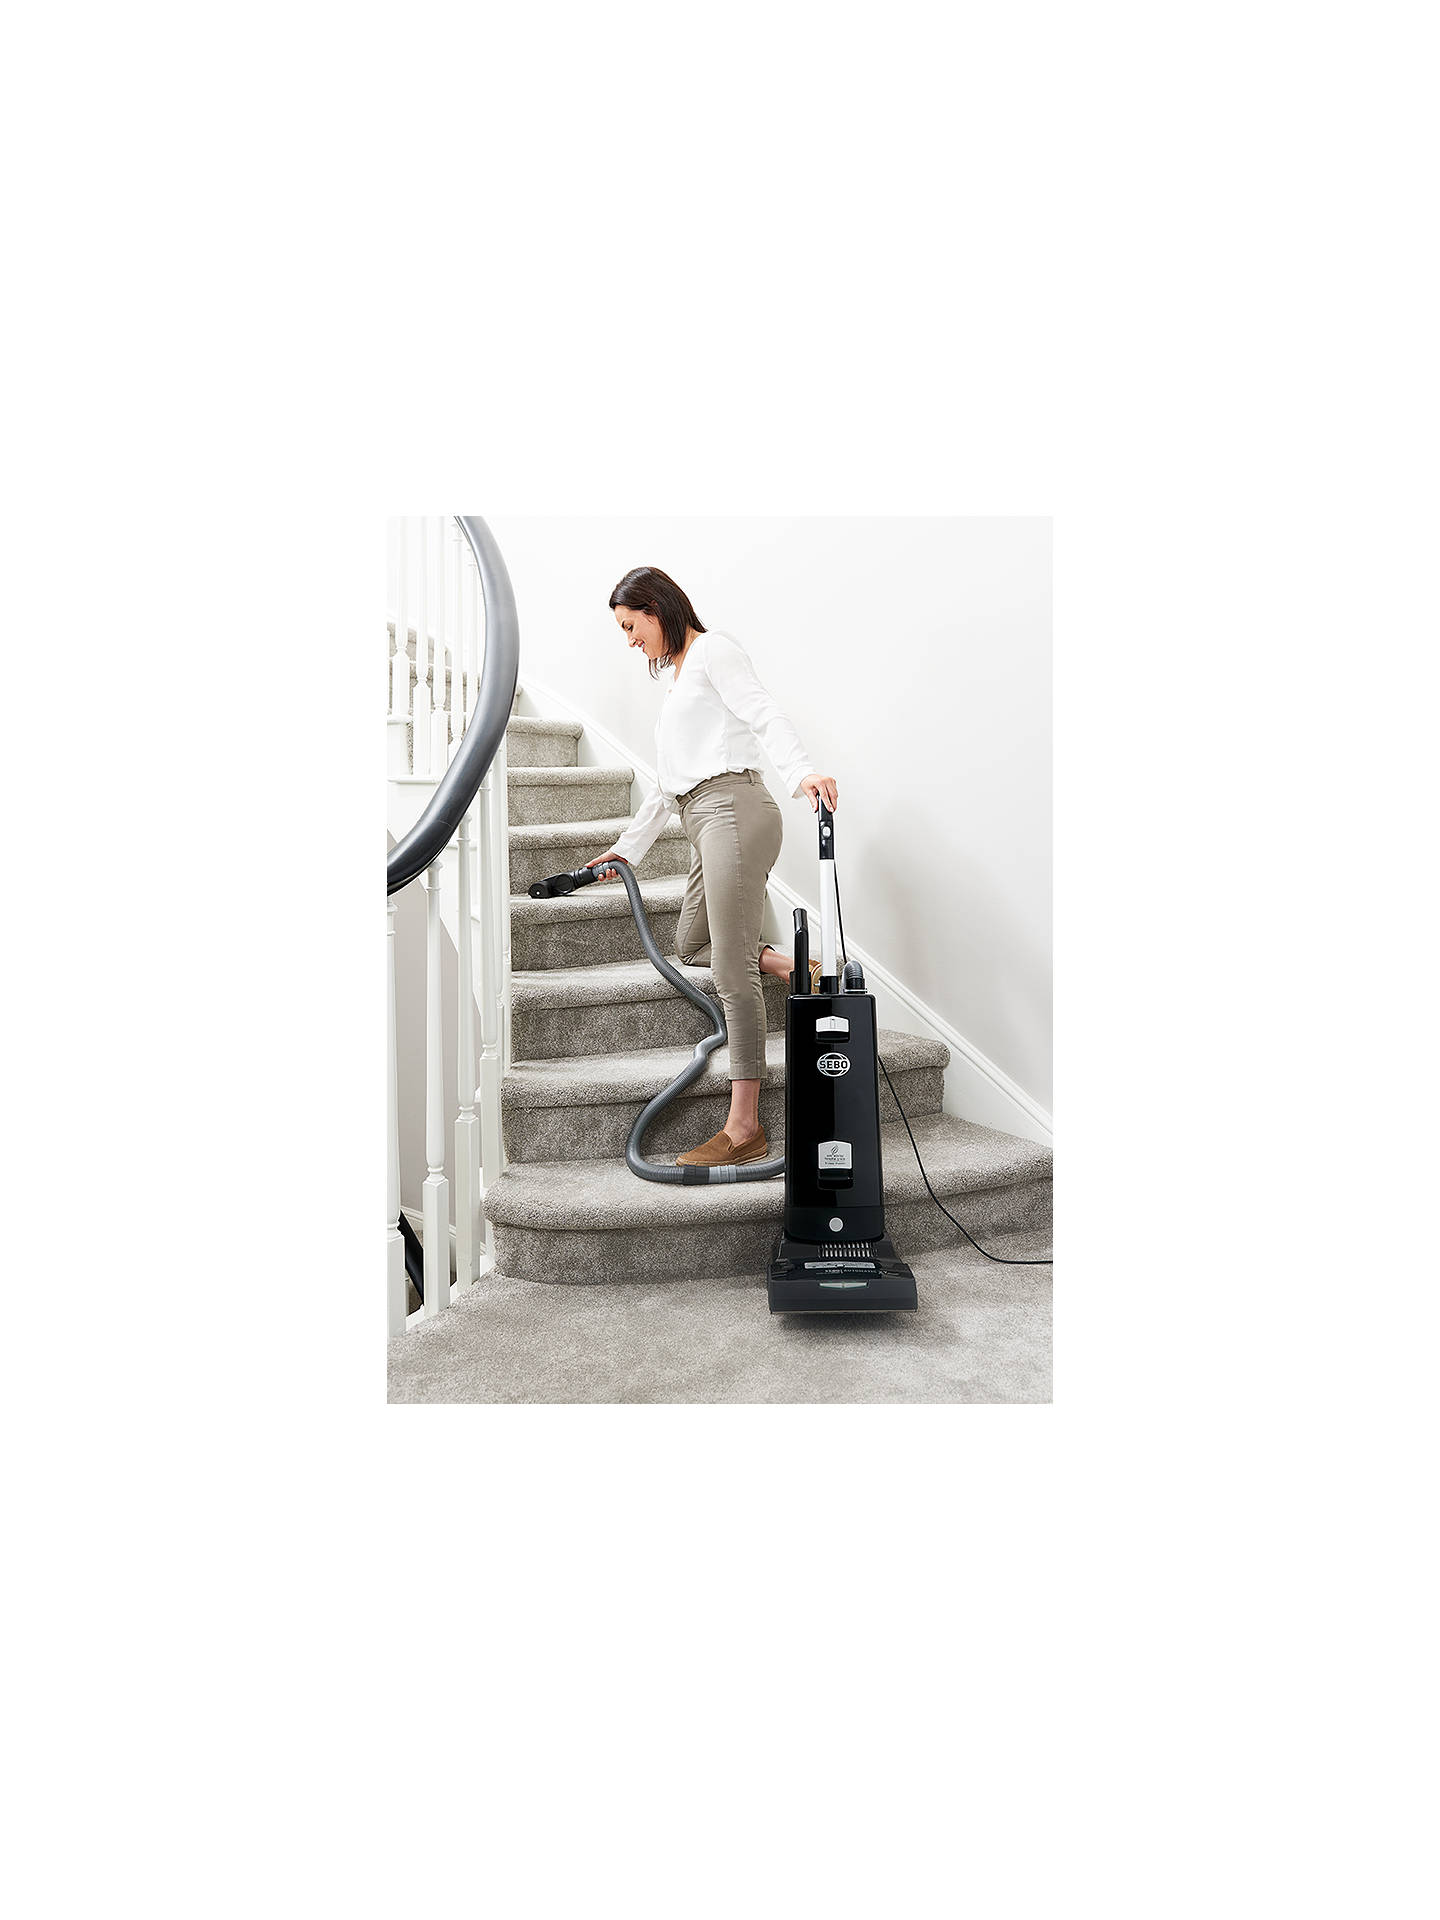 Buy SEBO Automatic X7 Pet ePower Vacuum Cleaner, Black Online at johnlewis.com